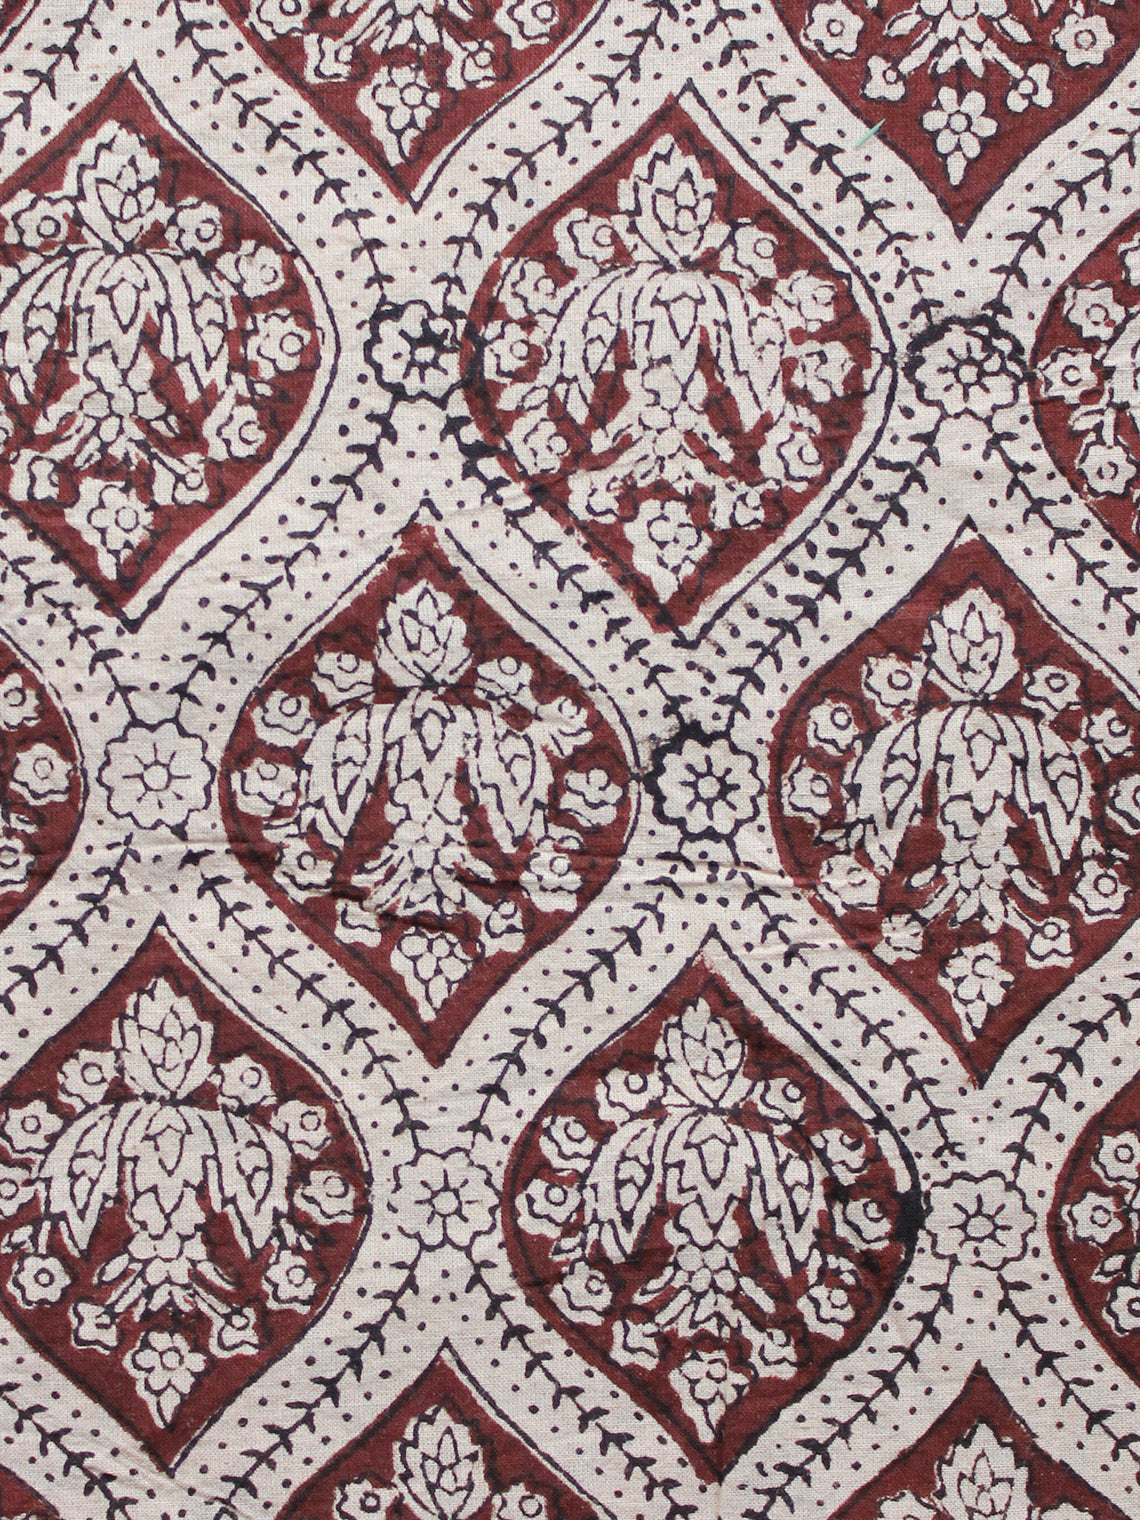 Beige Brown Black Hand Block Printed Cotton Fabric Per Meter - F001F1334